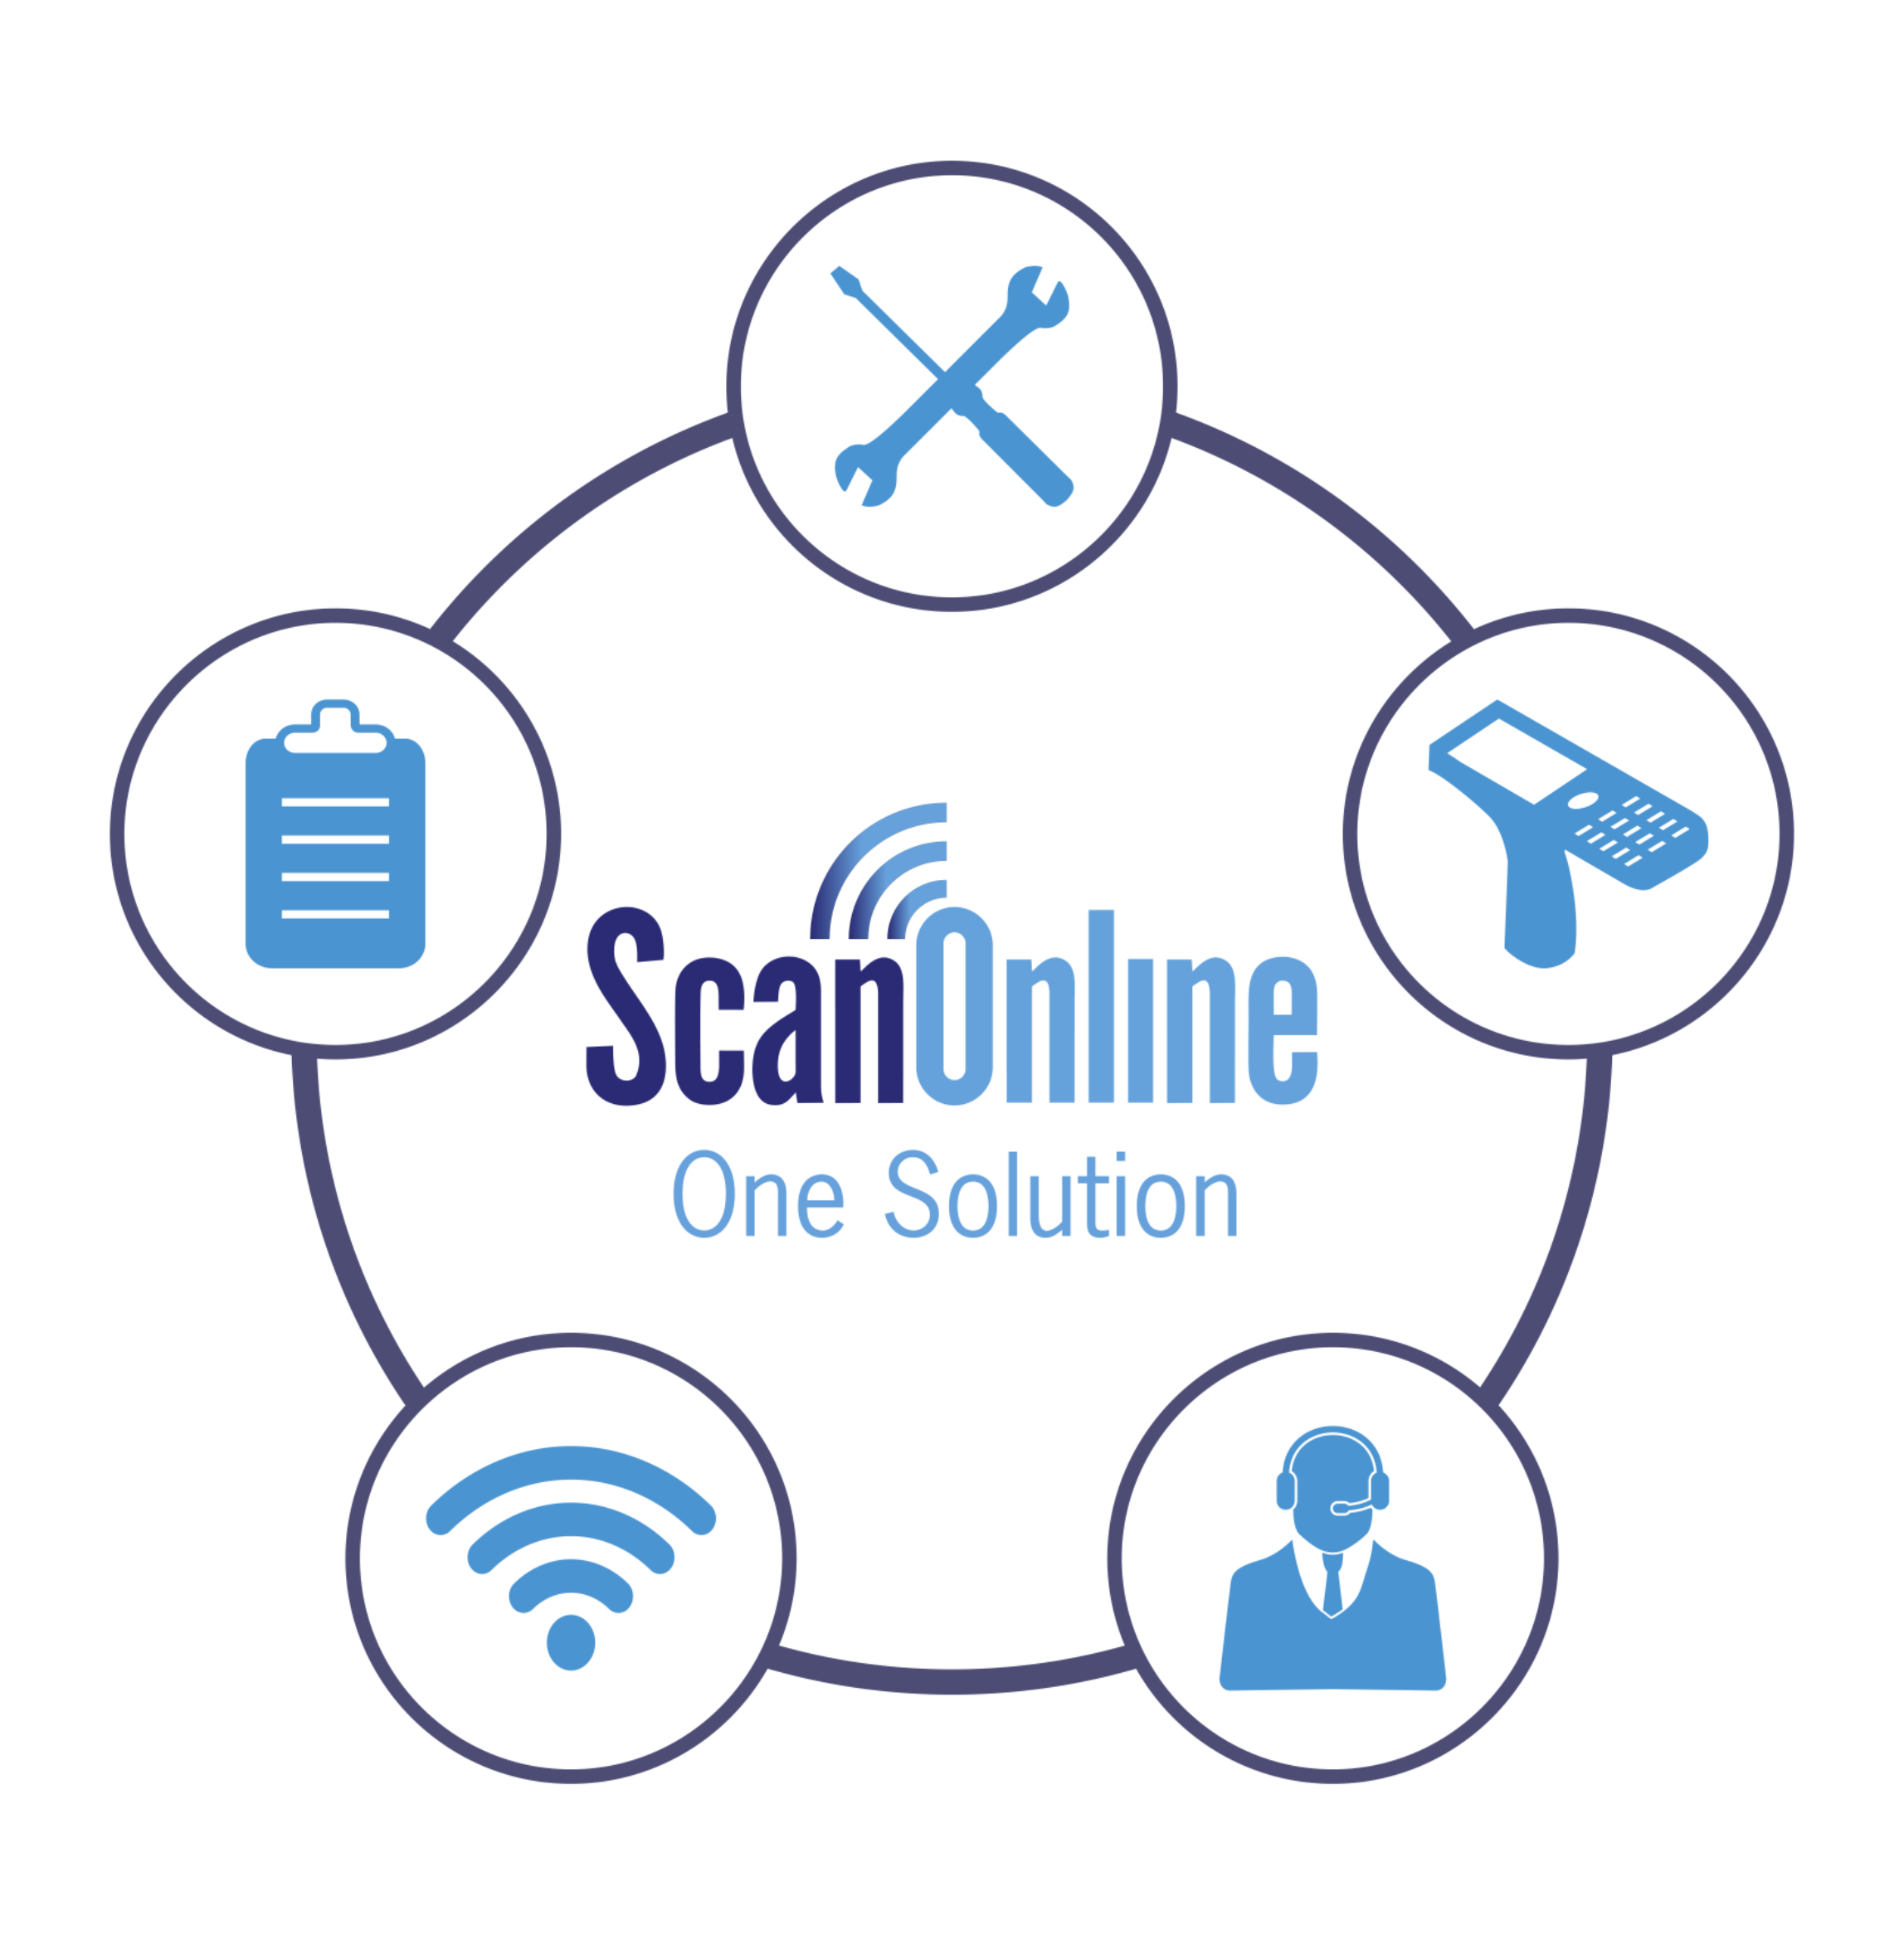 The ScanOnline One Solution